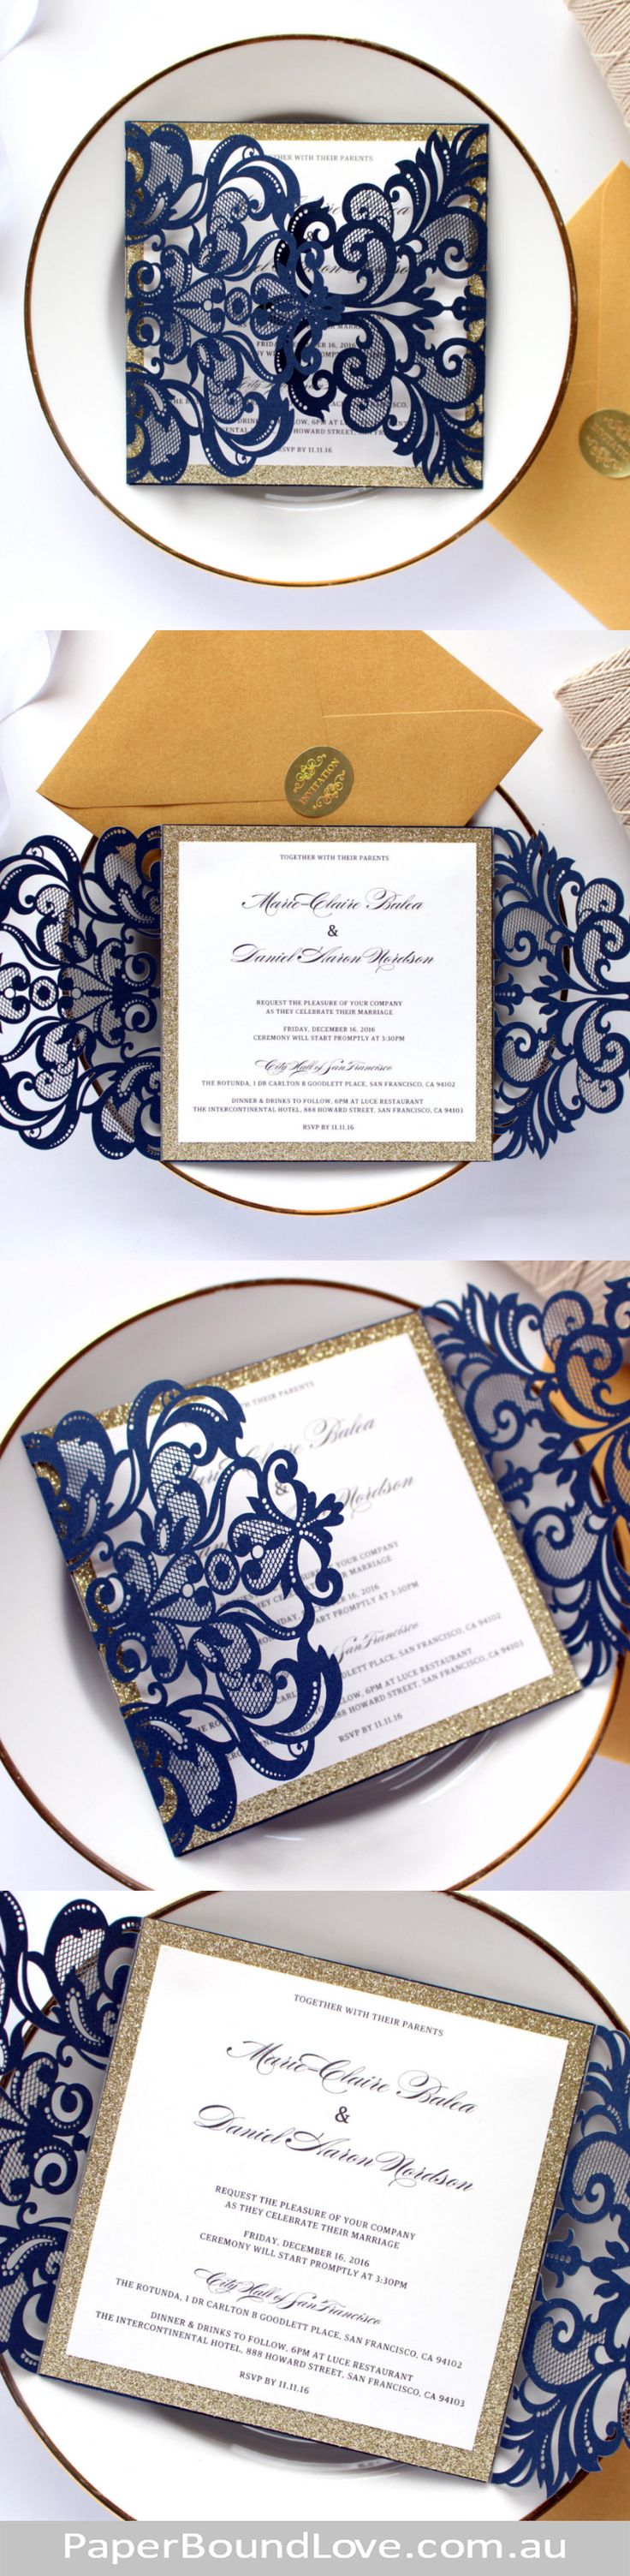 95 best Wedding Luxury Invitations images on Pinterest